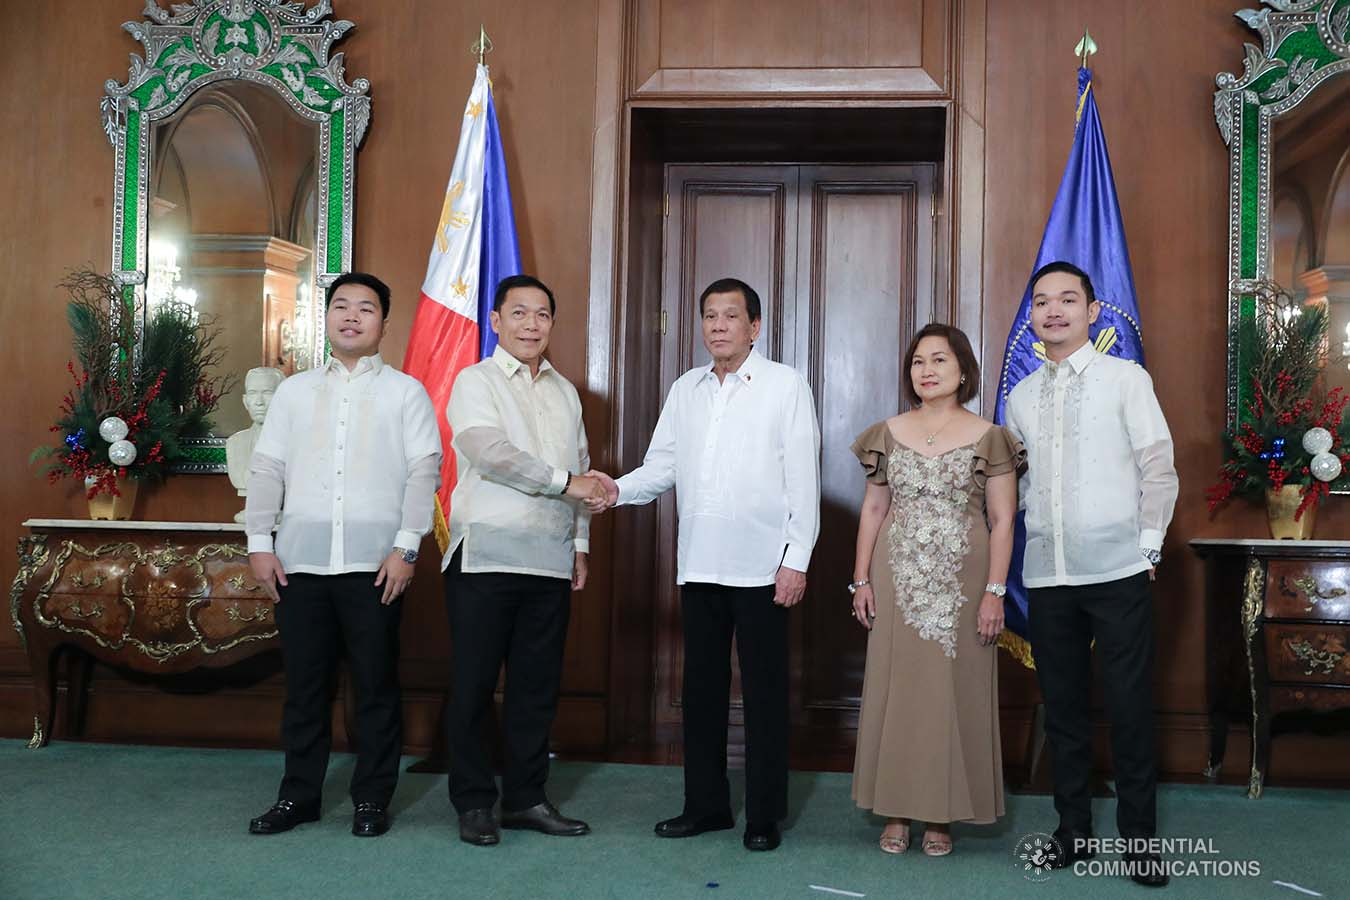 President Rodrigo Roa Duterte poses for posterity with newly-appointed Supreme Court Associate Justice Samuel Gaerlan and his family during the oath-taking ceremony at the Malacañan Palace on January 8, 2020.VALERIE ESCALERA/PRESIDENTIAL PHOTO